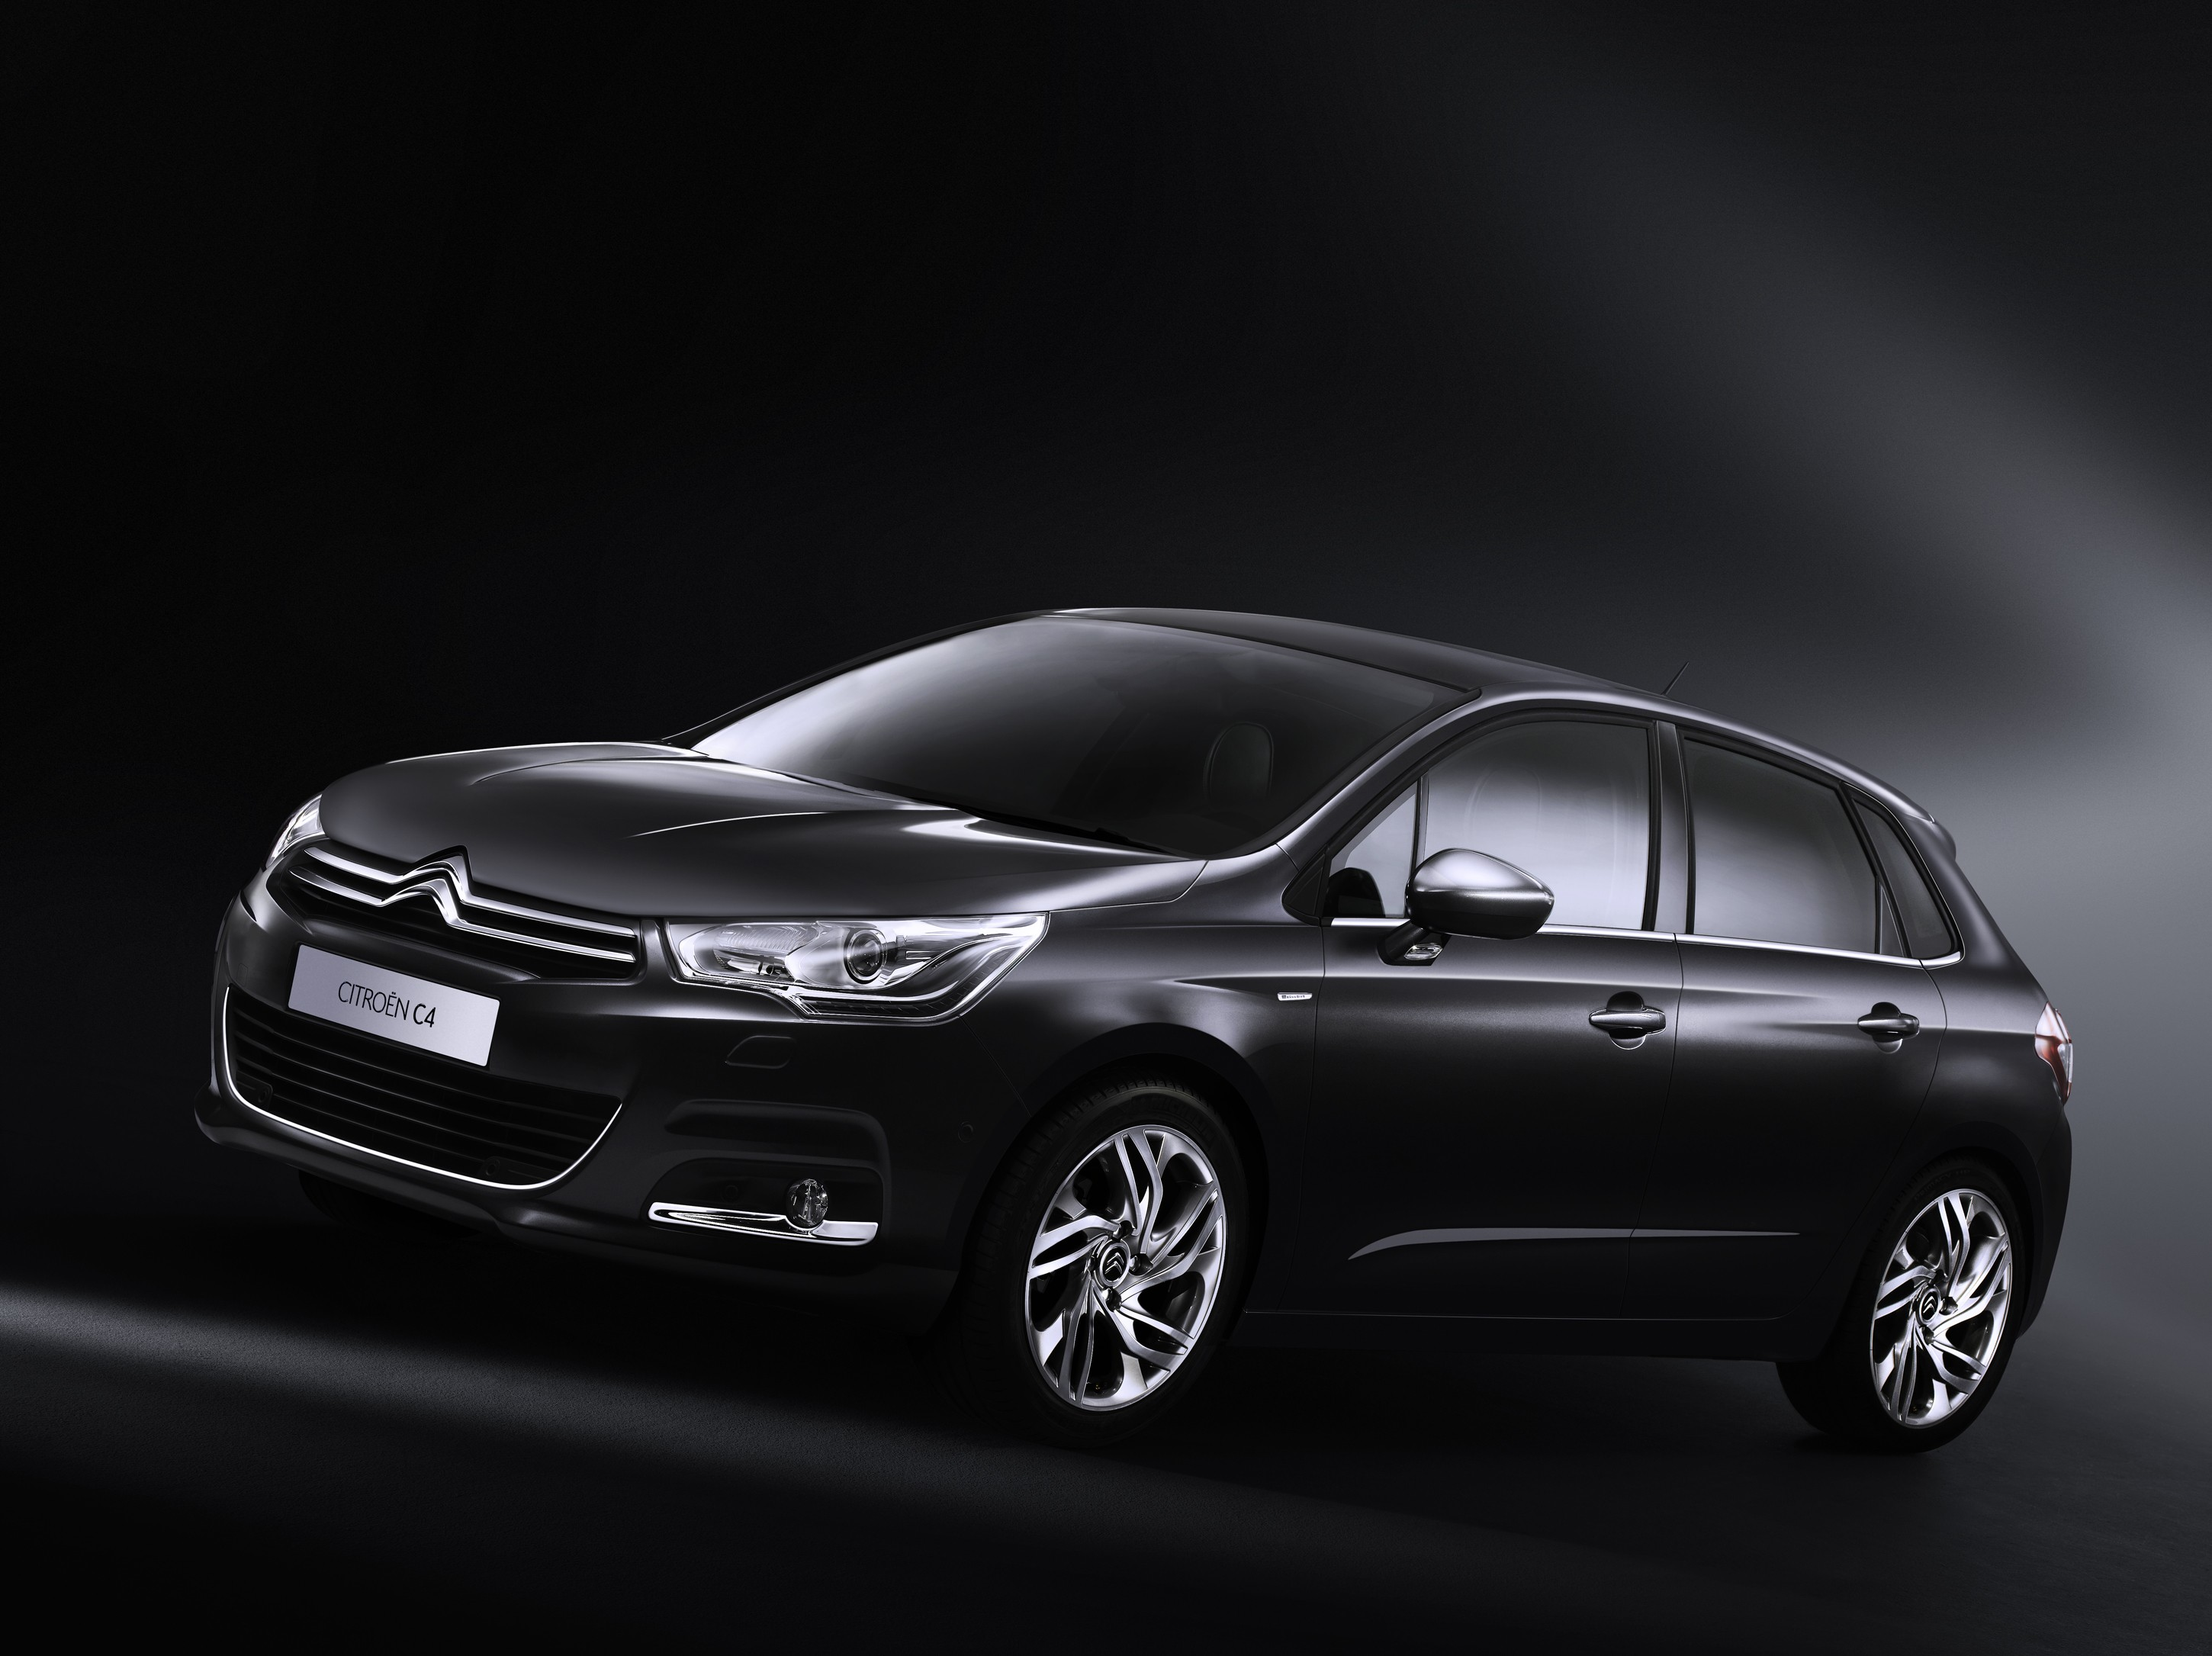 citroen c4 hatchback specs photos 2010 2011 2012 2013 autoevolution. Black Bedroom Furniture Sets. Home Design Ideas